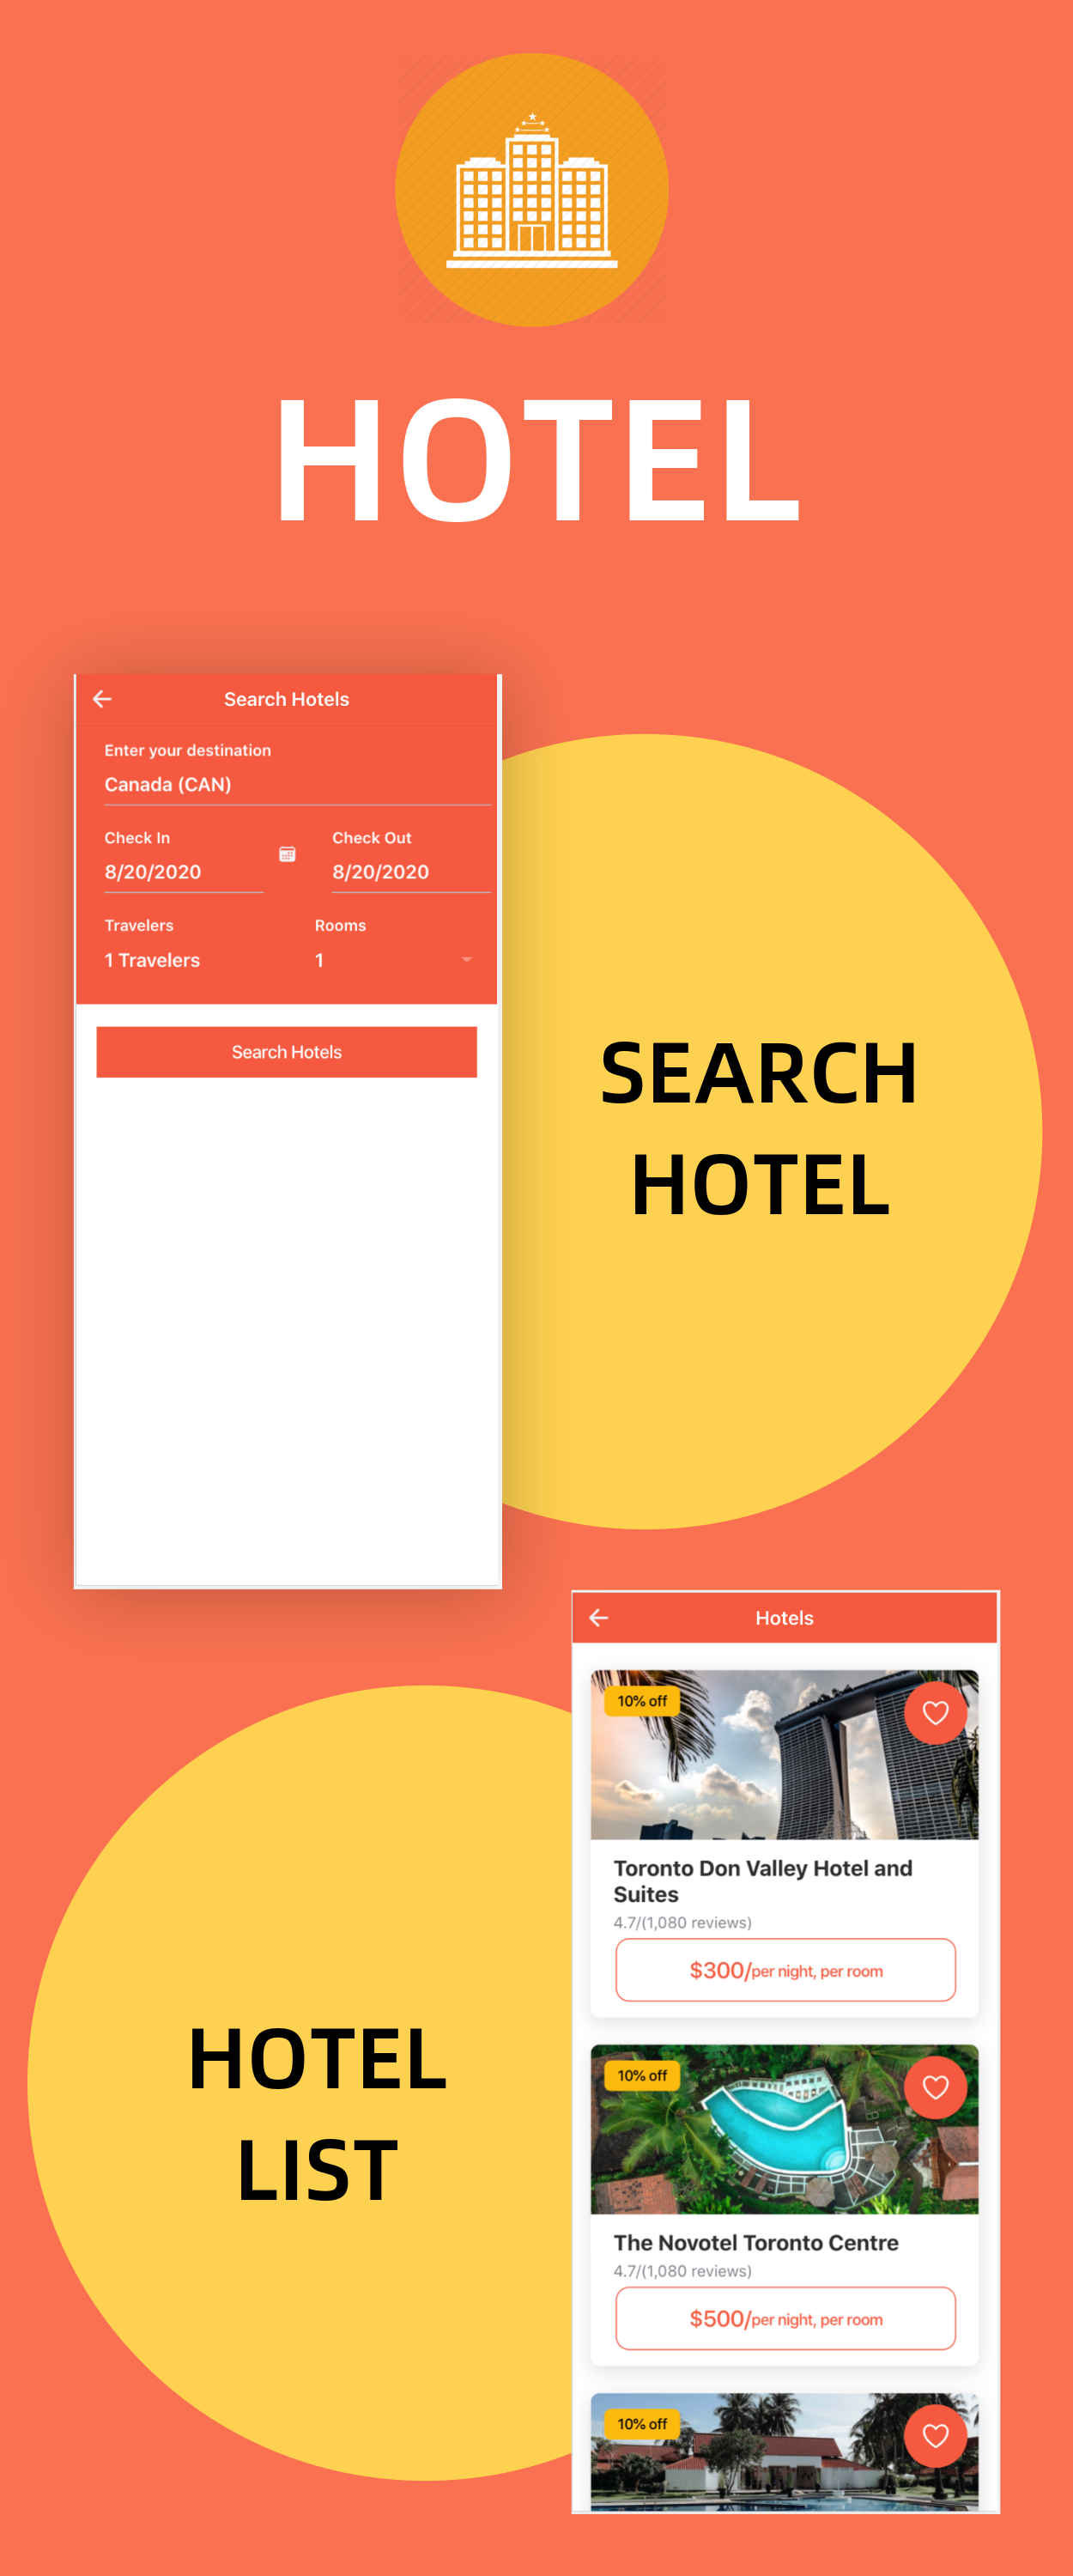 TravelEasy - A Travel Agency Theme UI App By Ionic 5 (Car, Hotel, Flight Booking) - 7